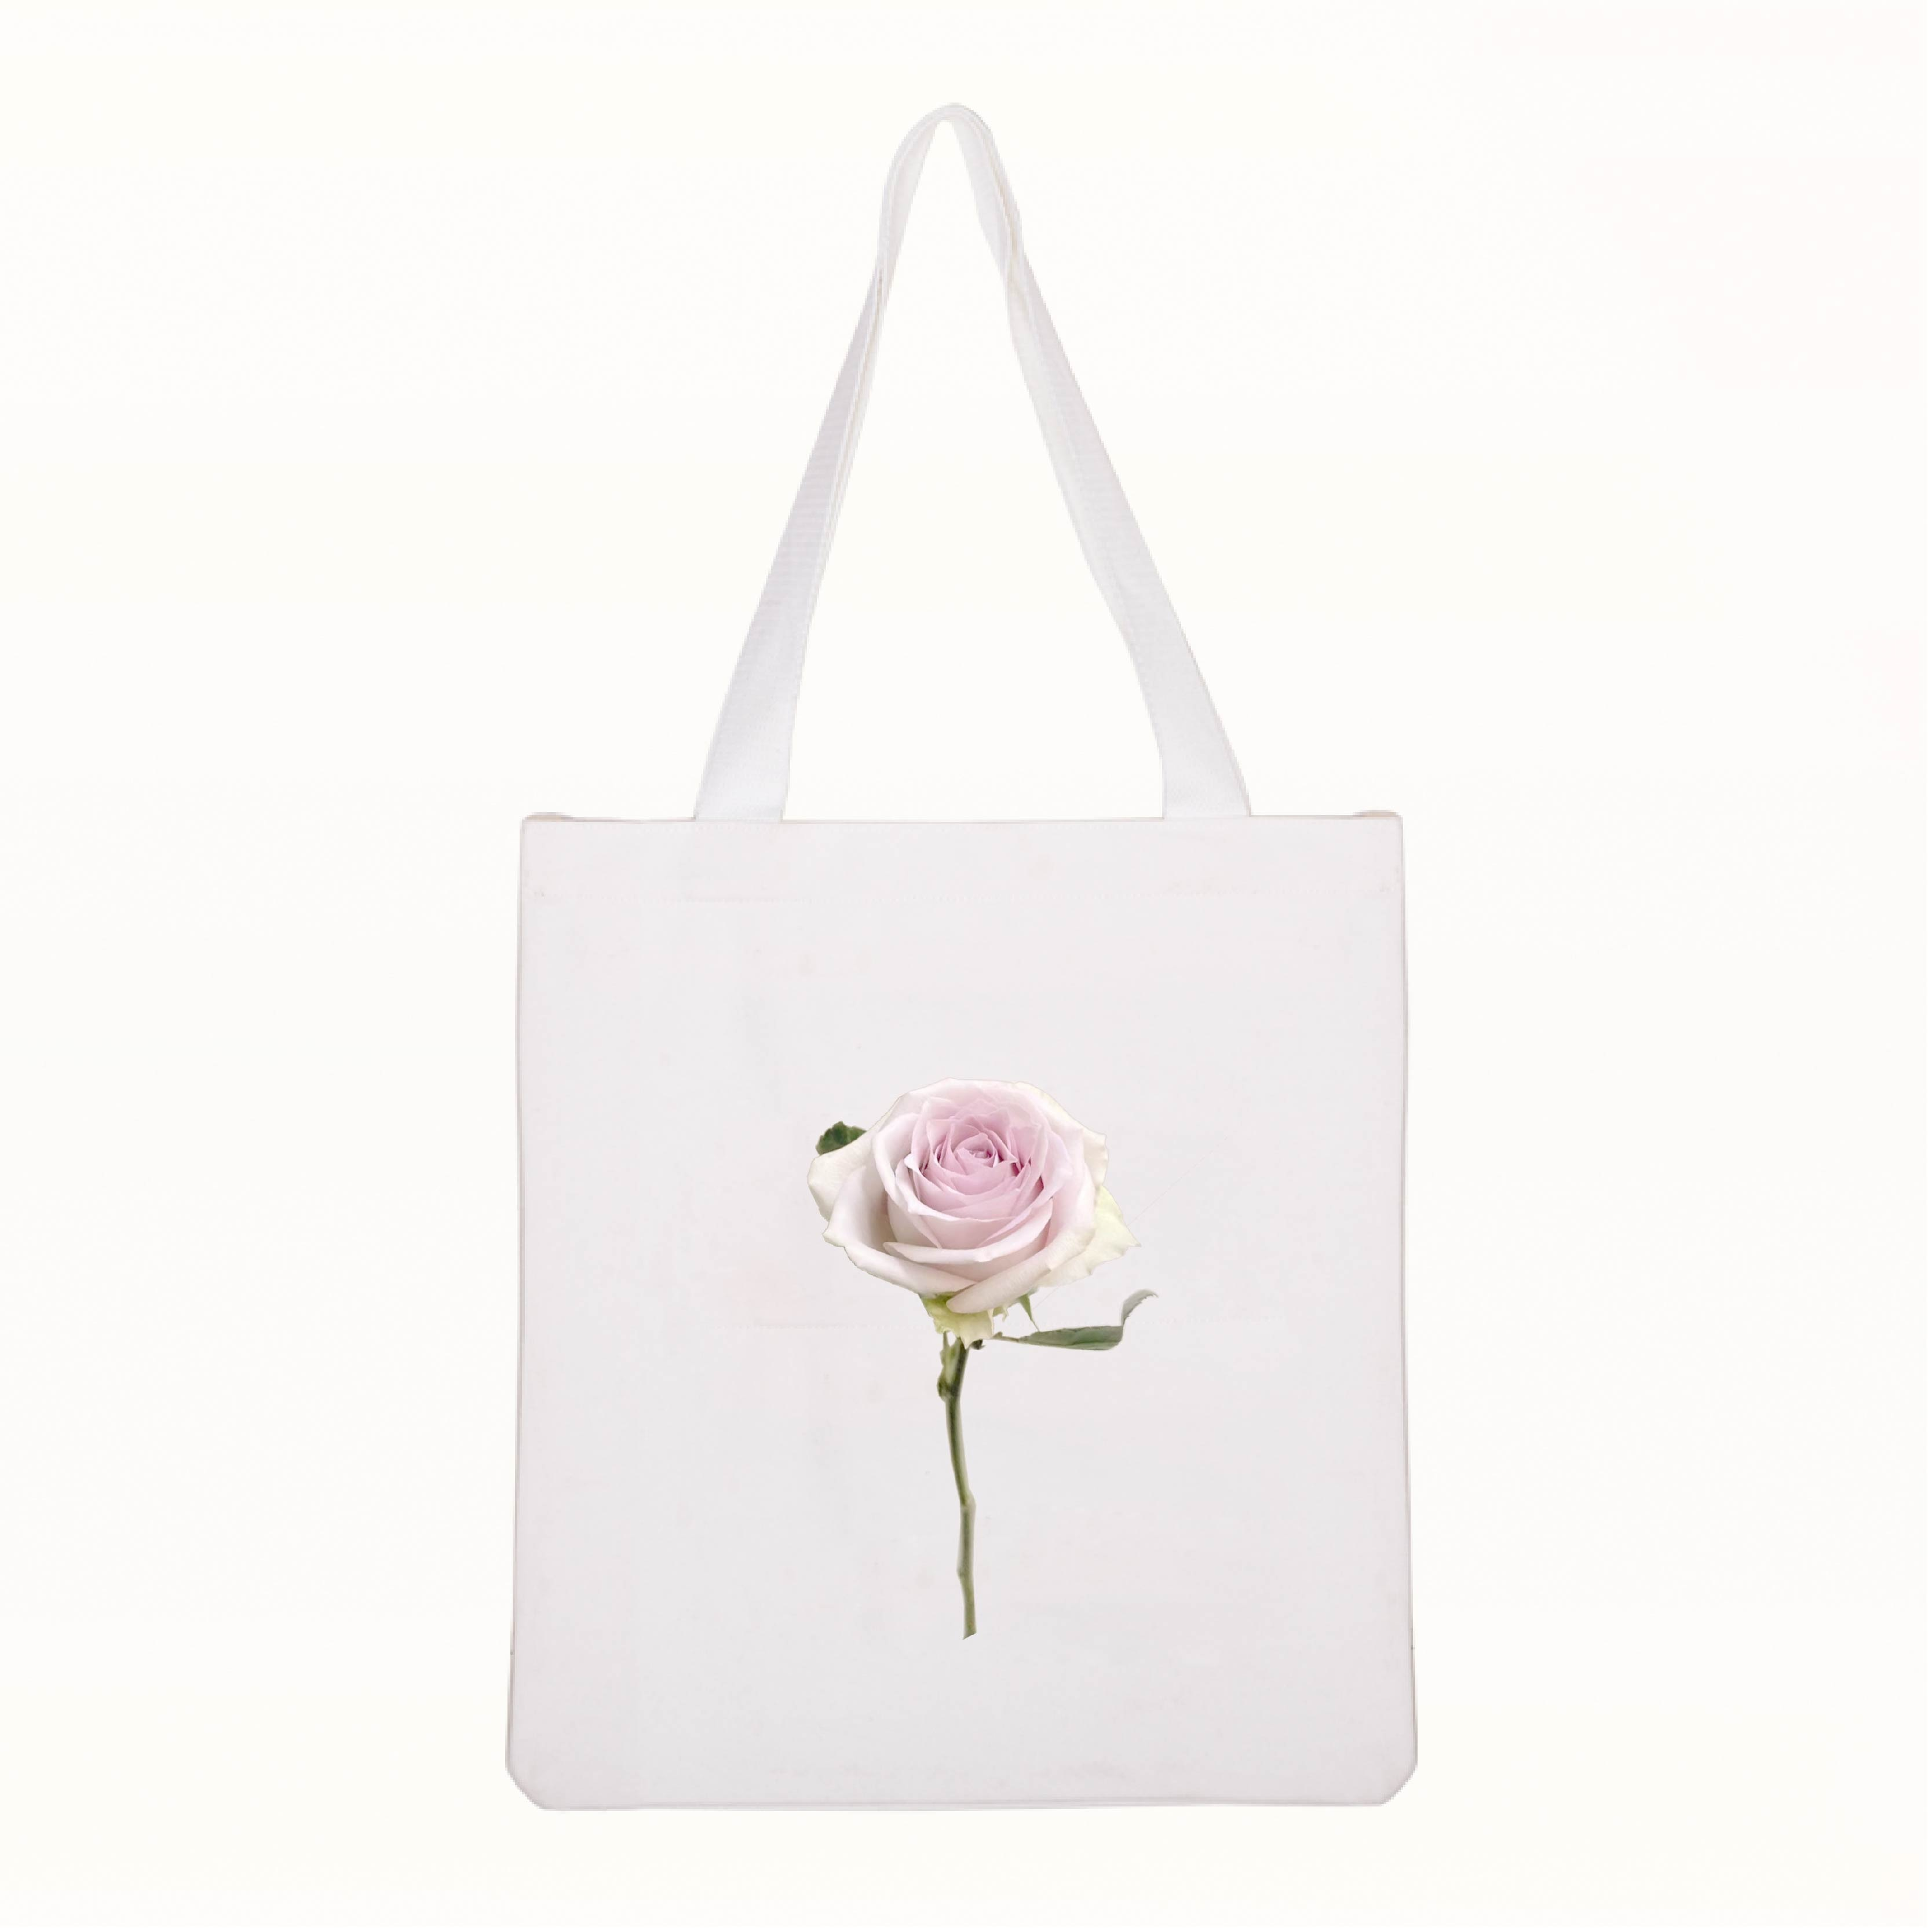 Flower prints Travel Bags Street Shopping Marketing Print Active canvas cotton bags Luggage&Bags Shoulder Bag Top-Handle